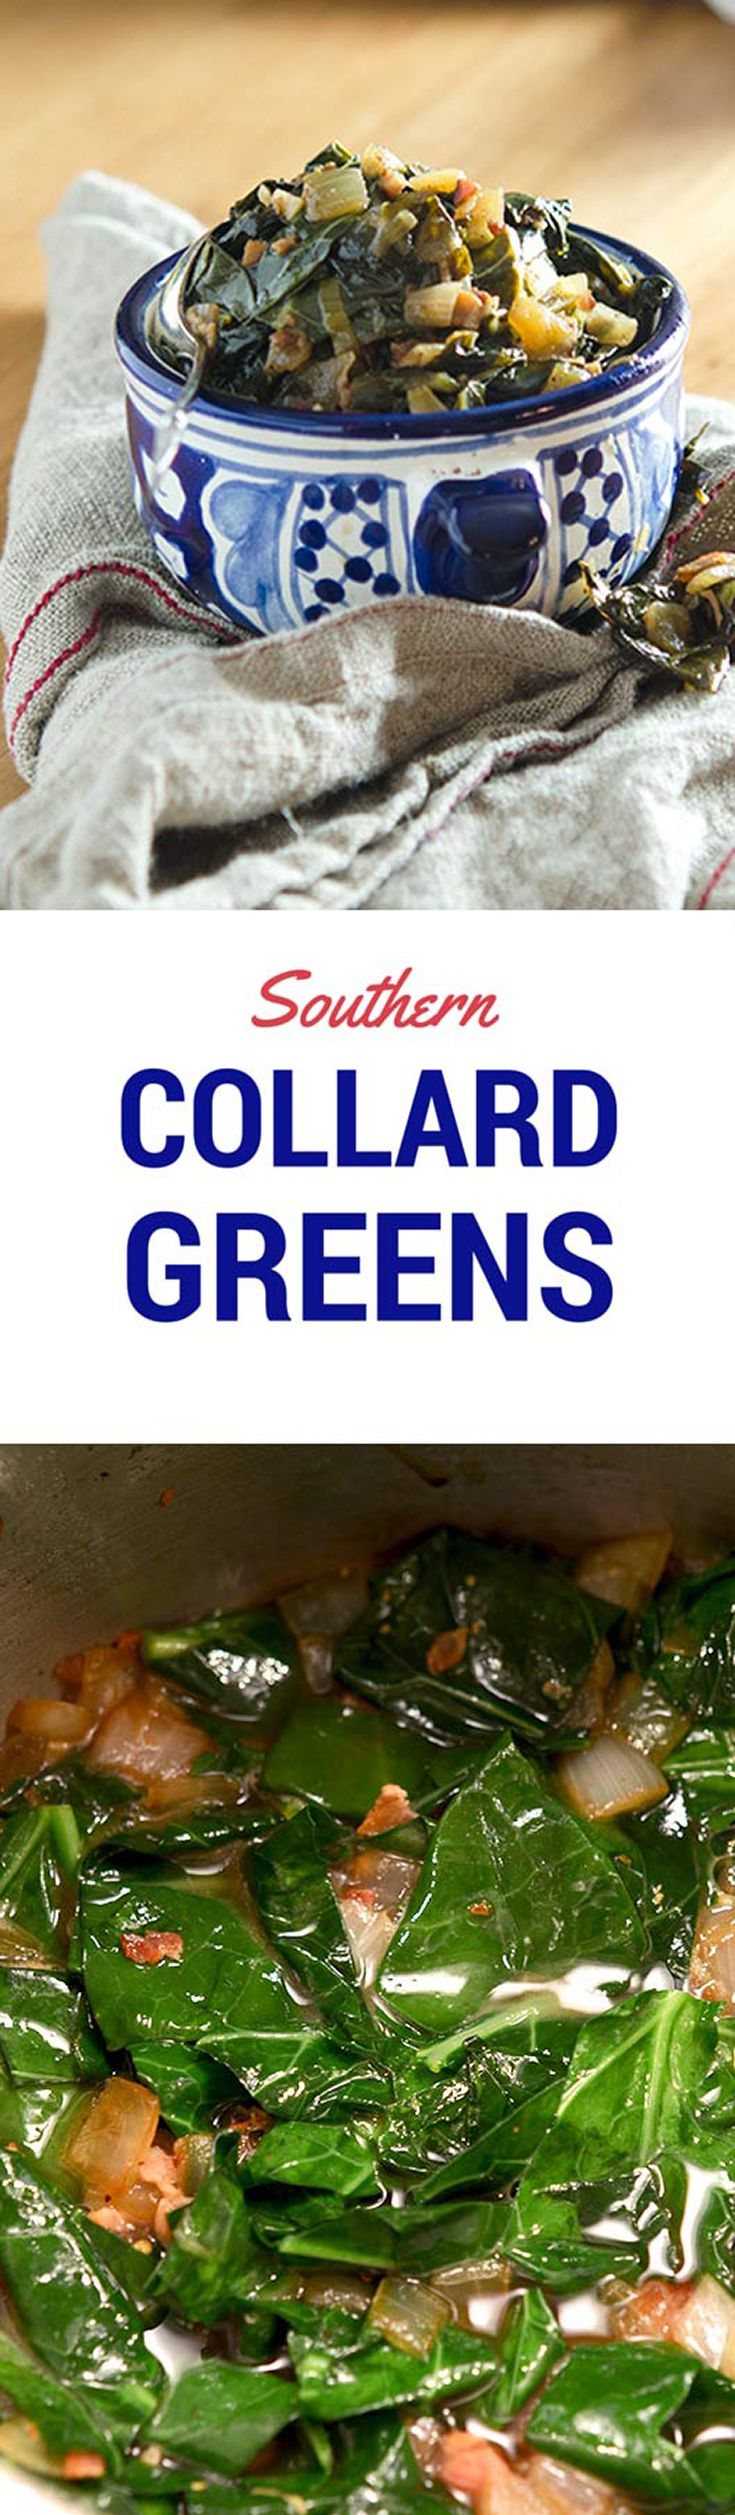 Filed Under: Blog, Comfort Foods, Front Page, Gluten Free, Paleo, Primal, Side Dishes, Wheat Belly Friendly Tagged With: braised veggies, chicken stock, collard greens, dairy free, easy to prepare, for the love of bacon, gluten free recipe, paleo recipe